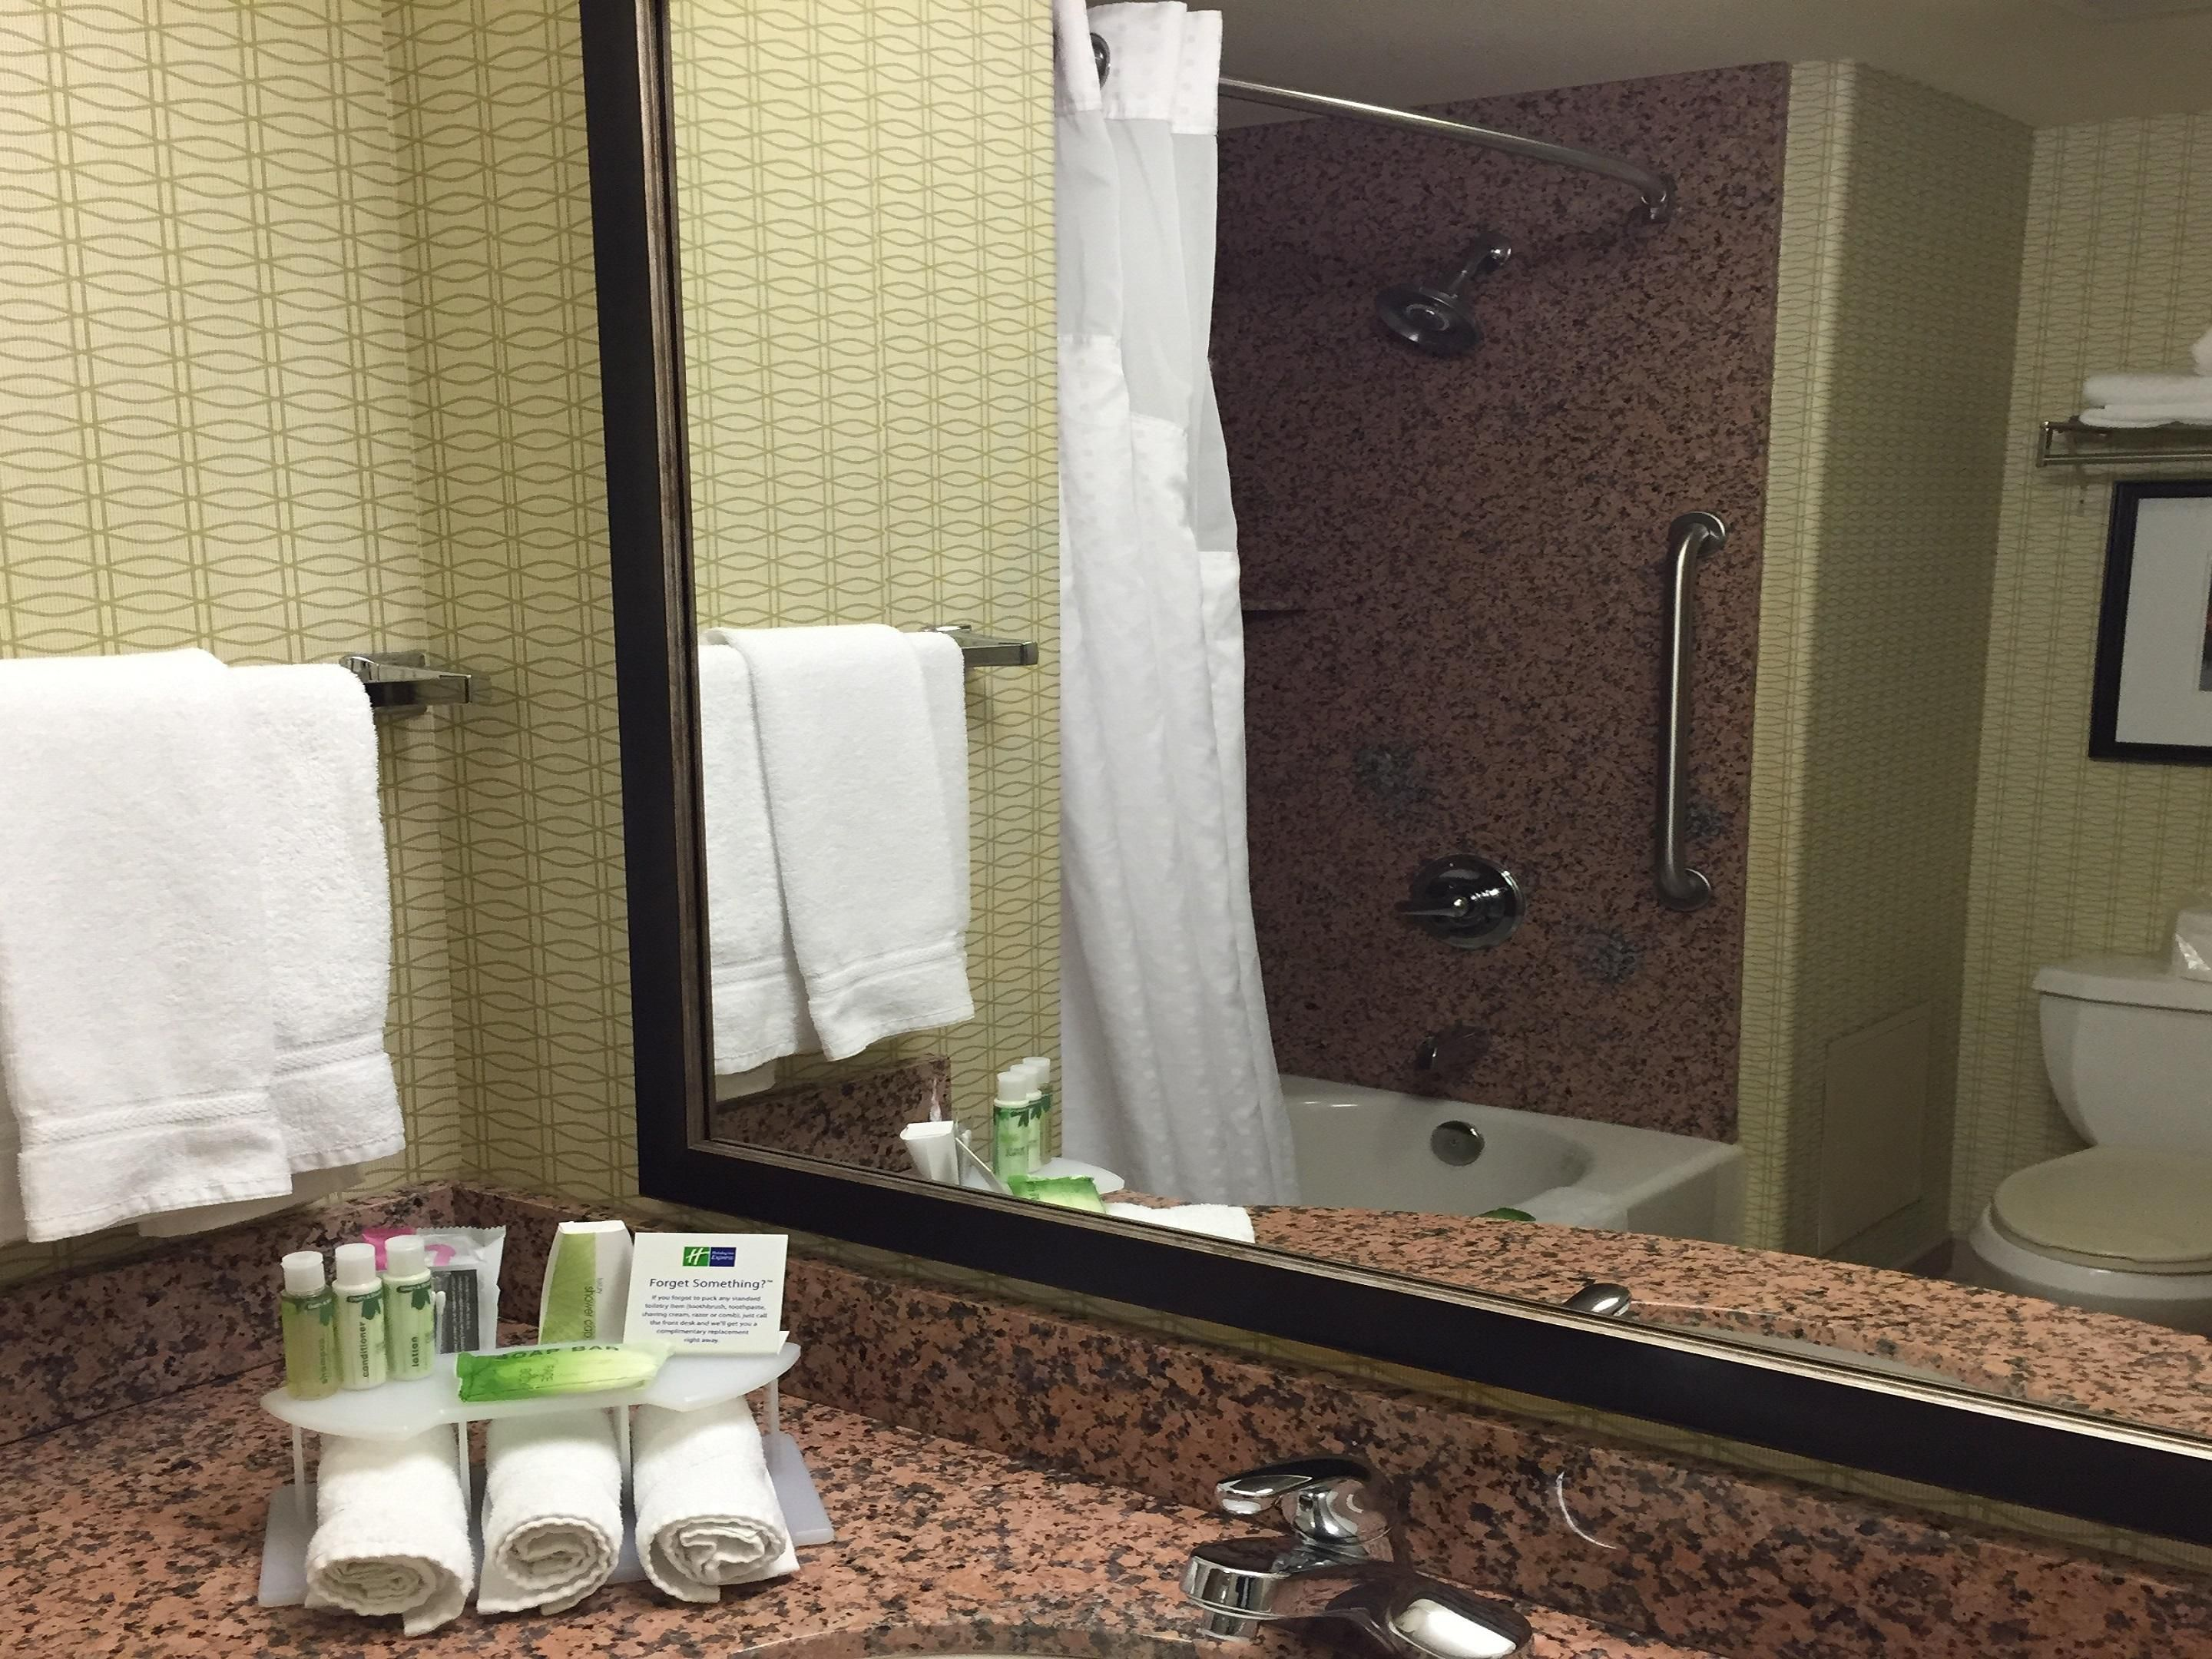 Holiday Inn Express Sacramento Airport Hotel Bathroom